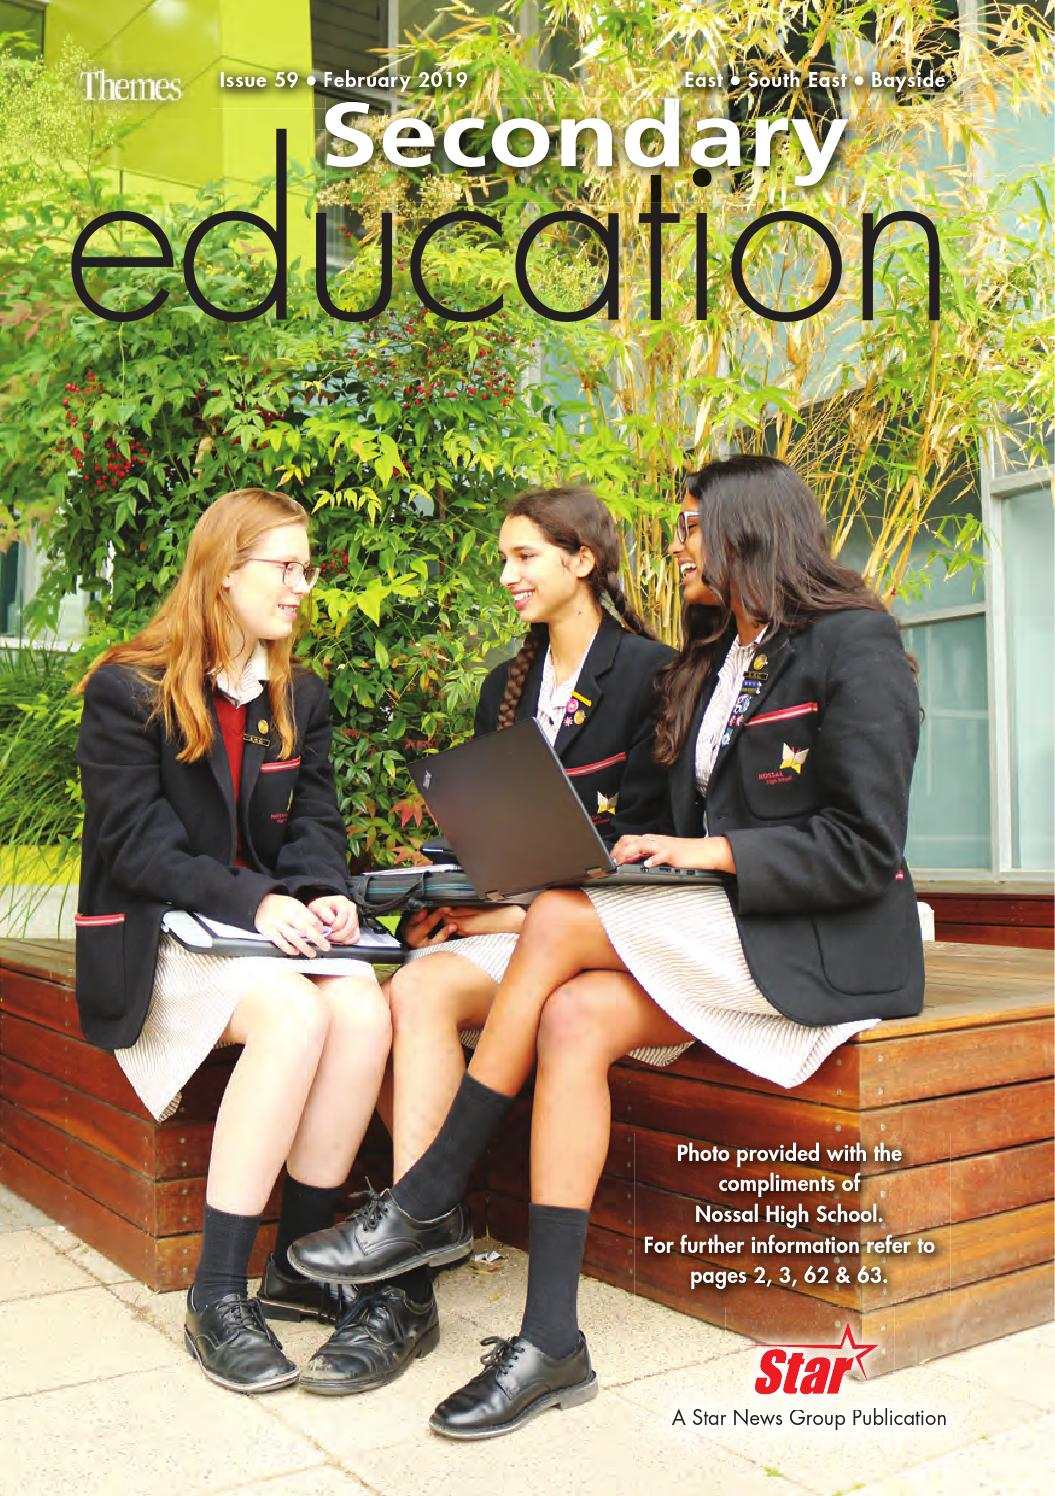 53296d4b23c Secondary Education - February 2019 by Star News Group - issuu